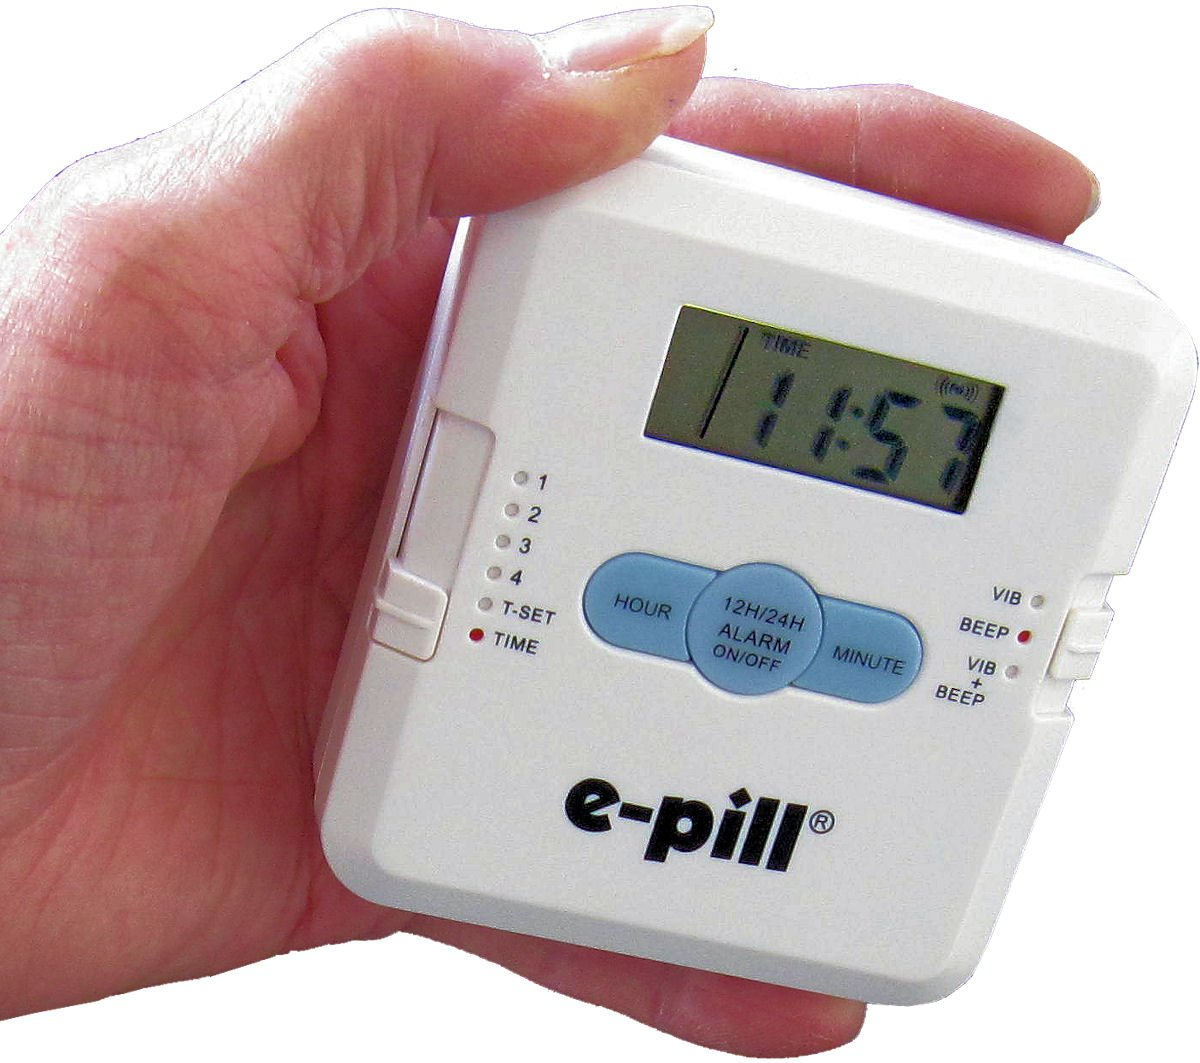 Amazon.com: e-pill | Pocket Pillbox | 4 Dose Per Day Pill Dispenser with  Vibrating and Audible Reminder Alarm | 4 Doses Per Day x 1 Day | Pocket Pill  ...